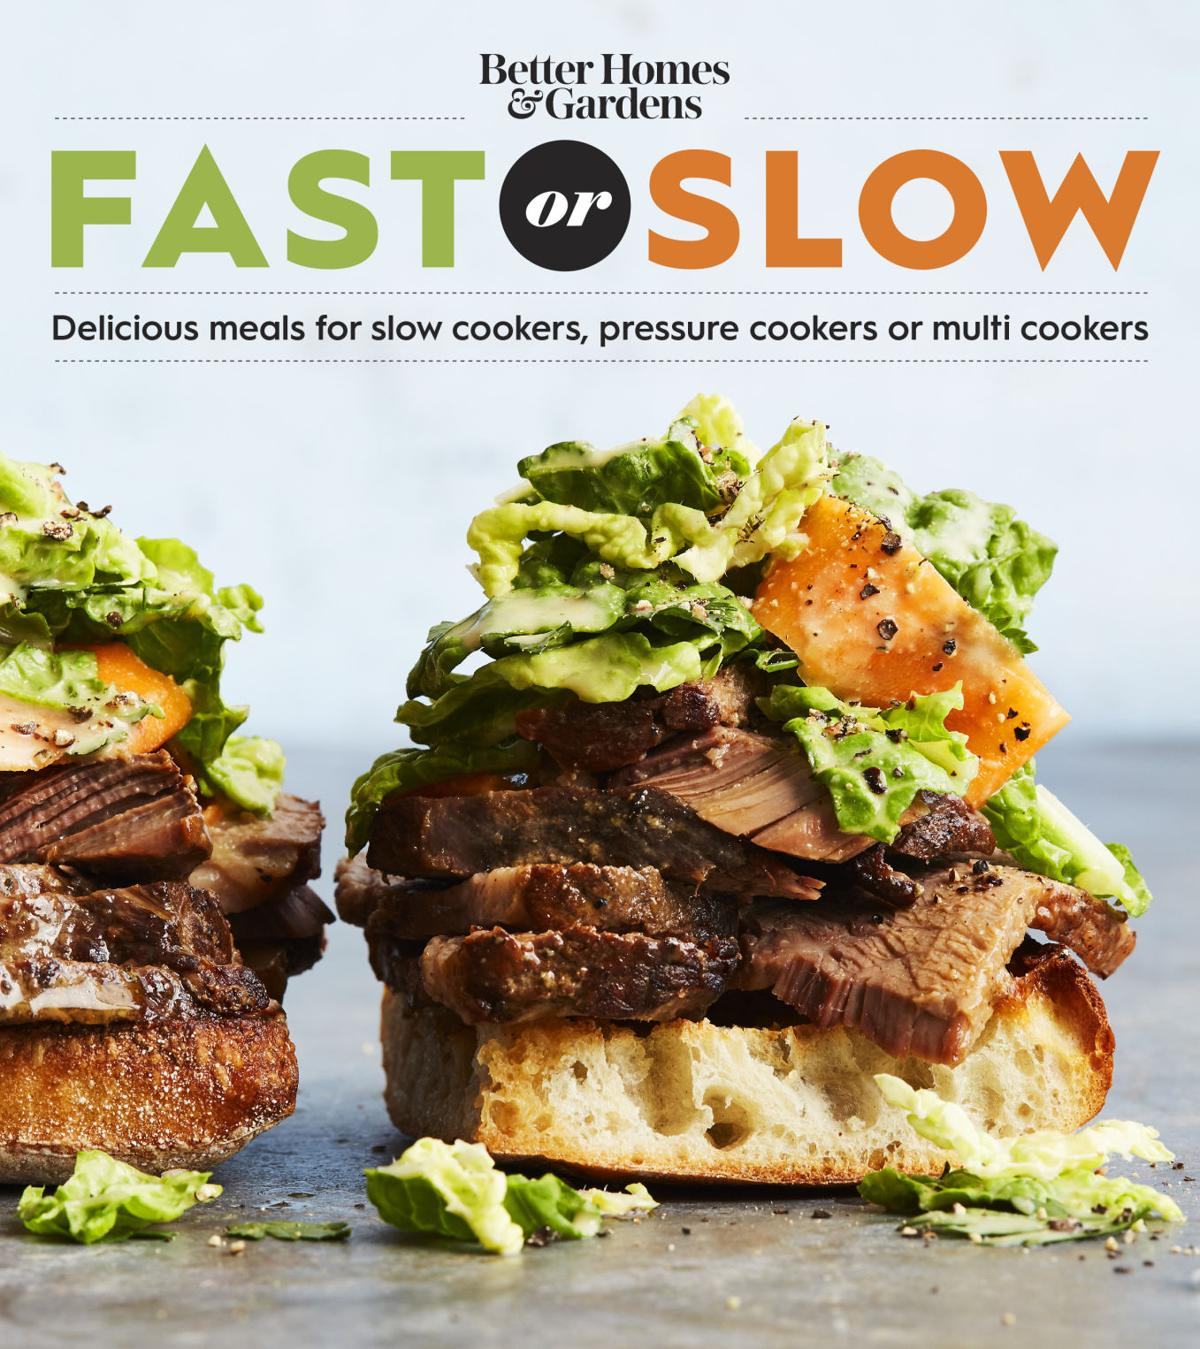 BHG_Fast_or_Slow_Cover